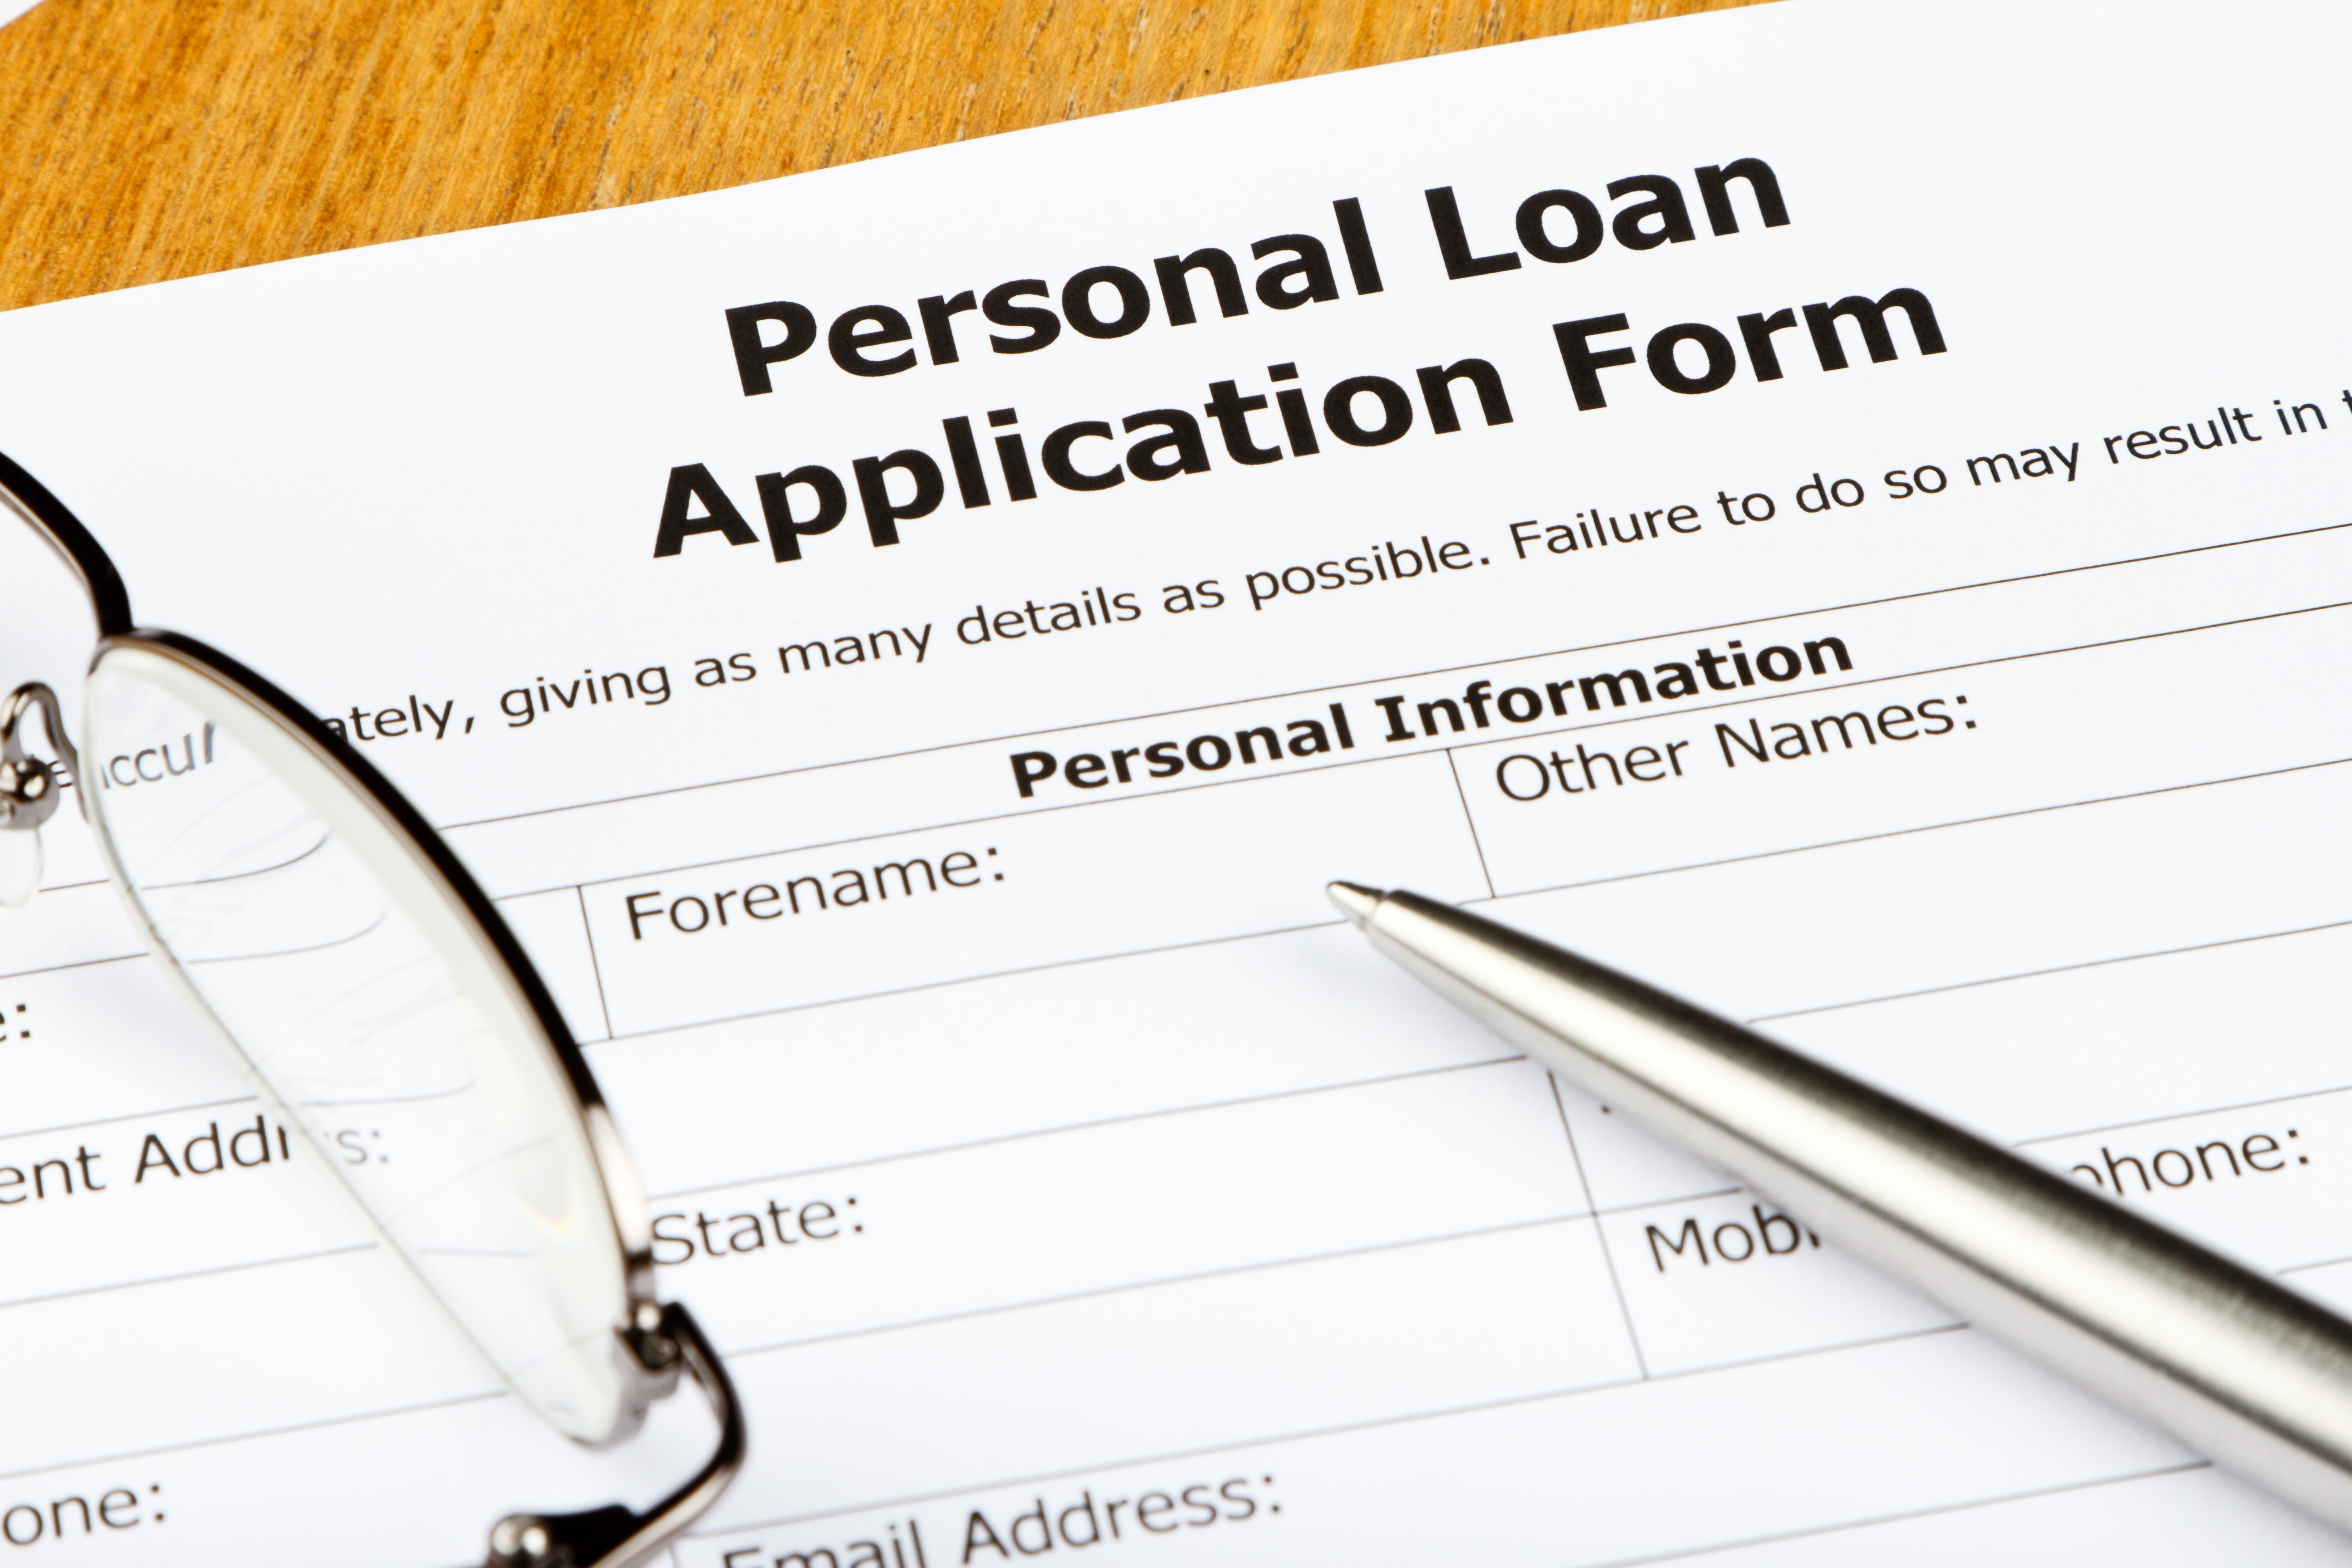 LETS GET PERSONAL... A PERSONAL LOAN THAT IS!